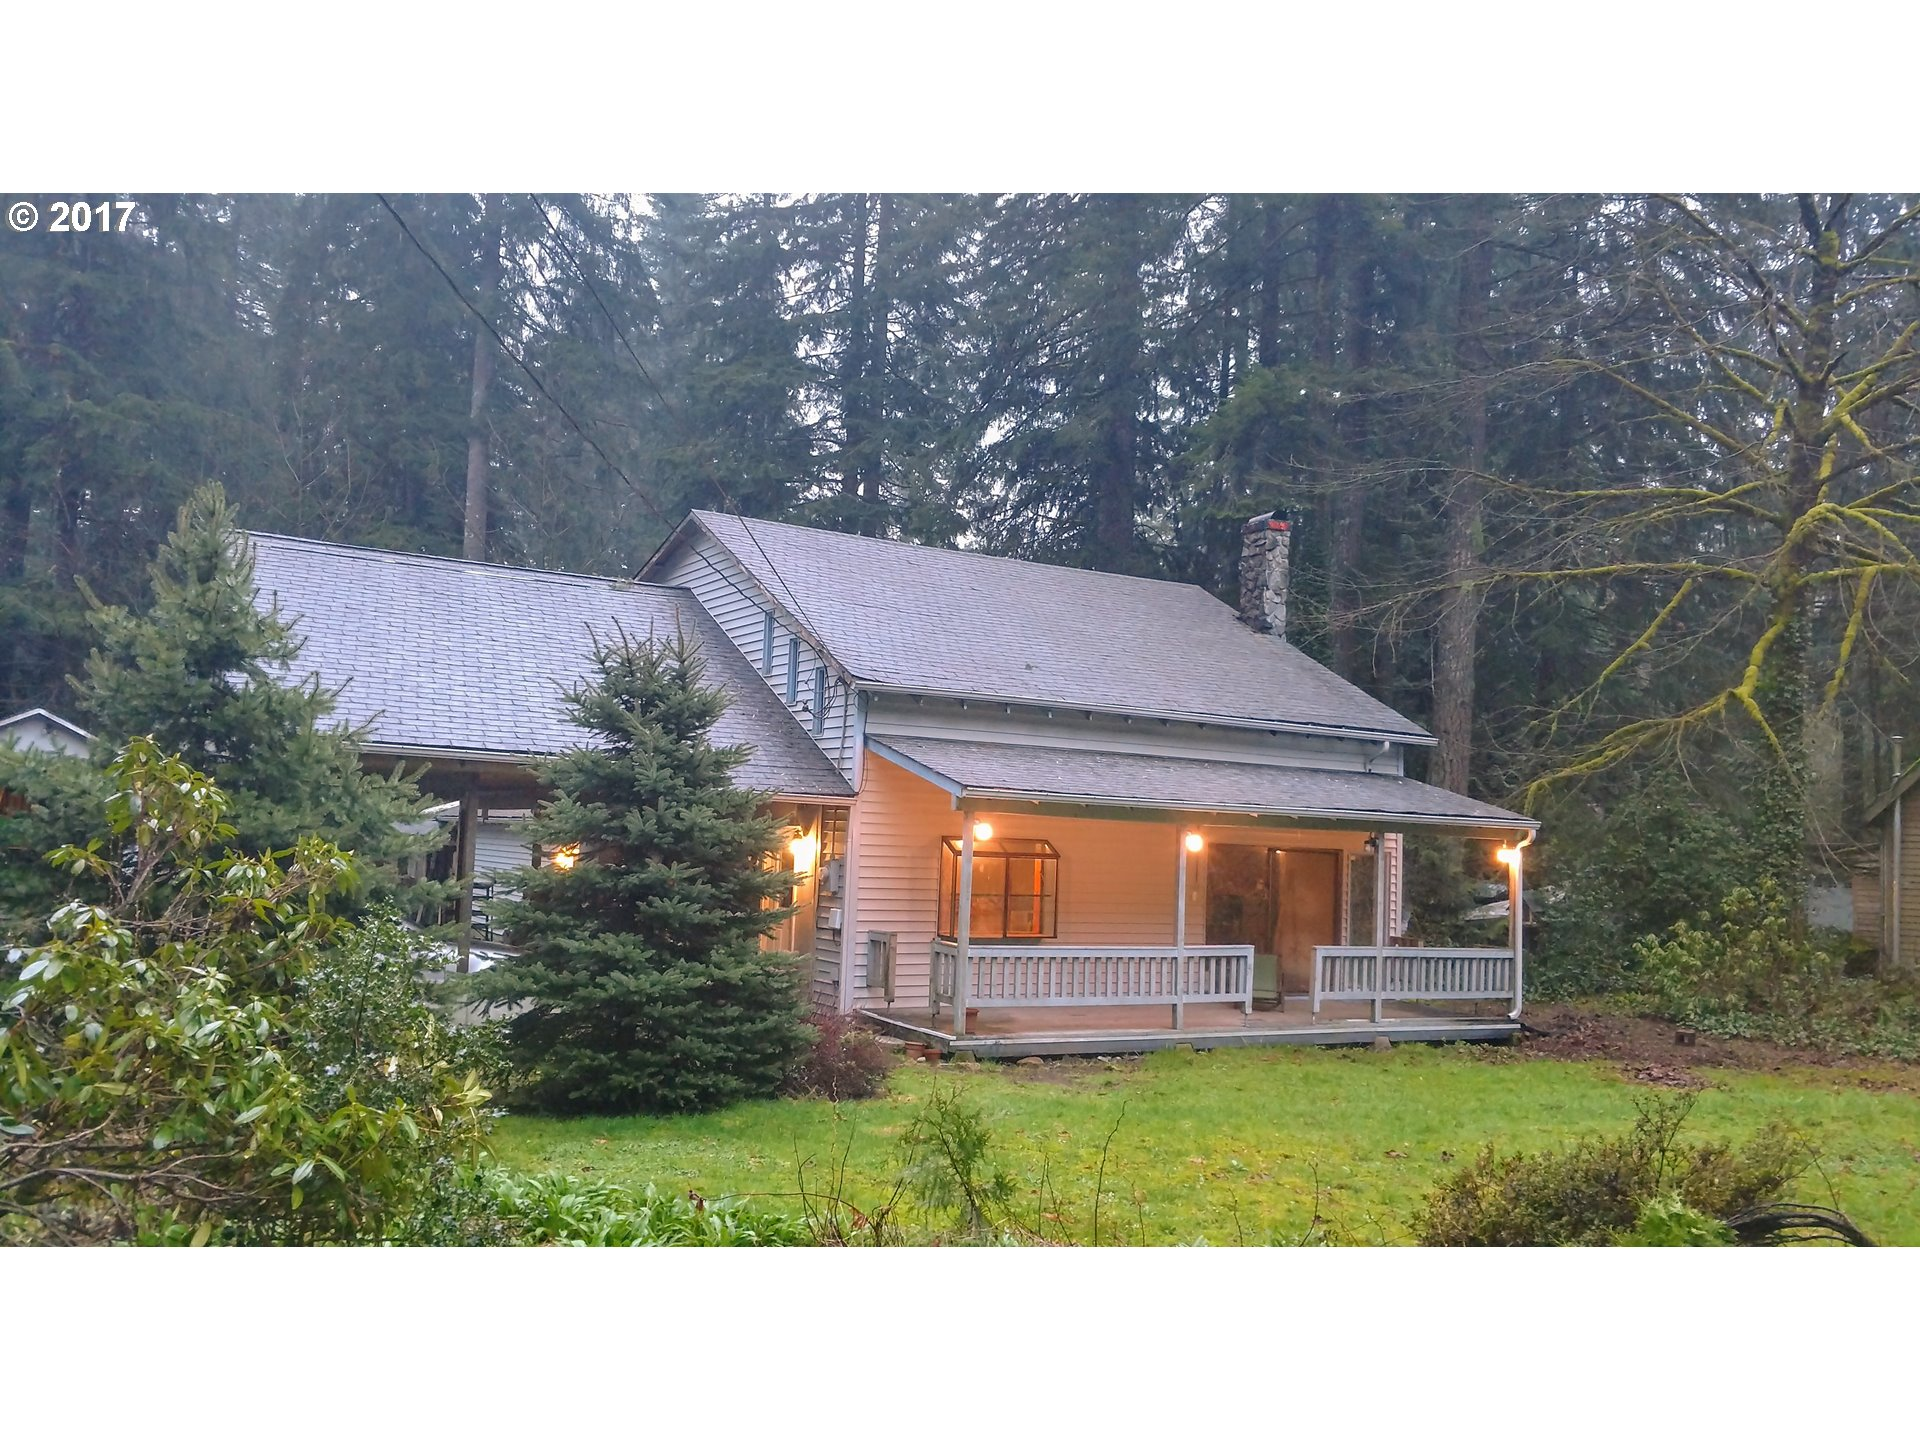 21240 E COUNTRY CLUB RD, Brightwood, OR 97011